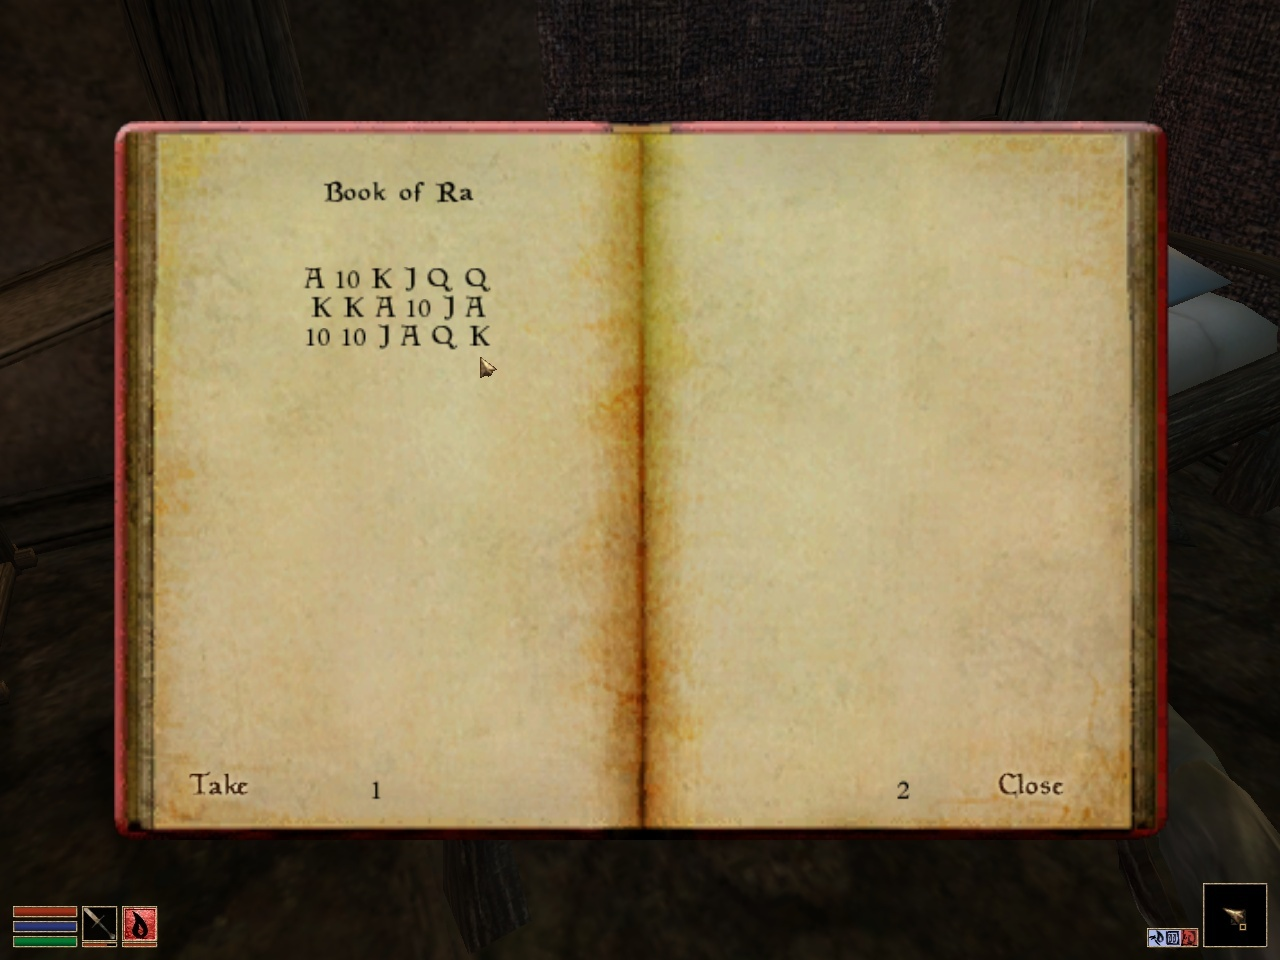 Book of Ra in Morrowind